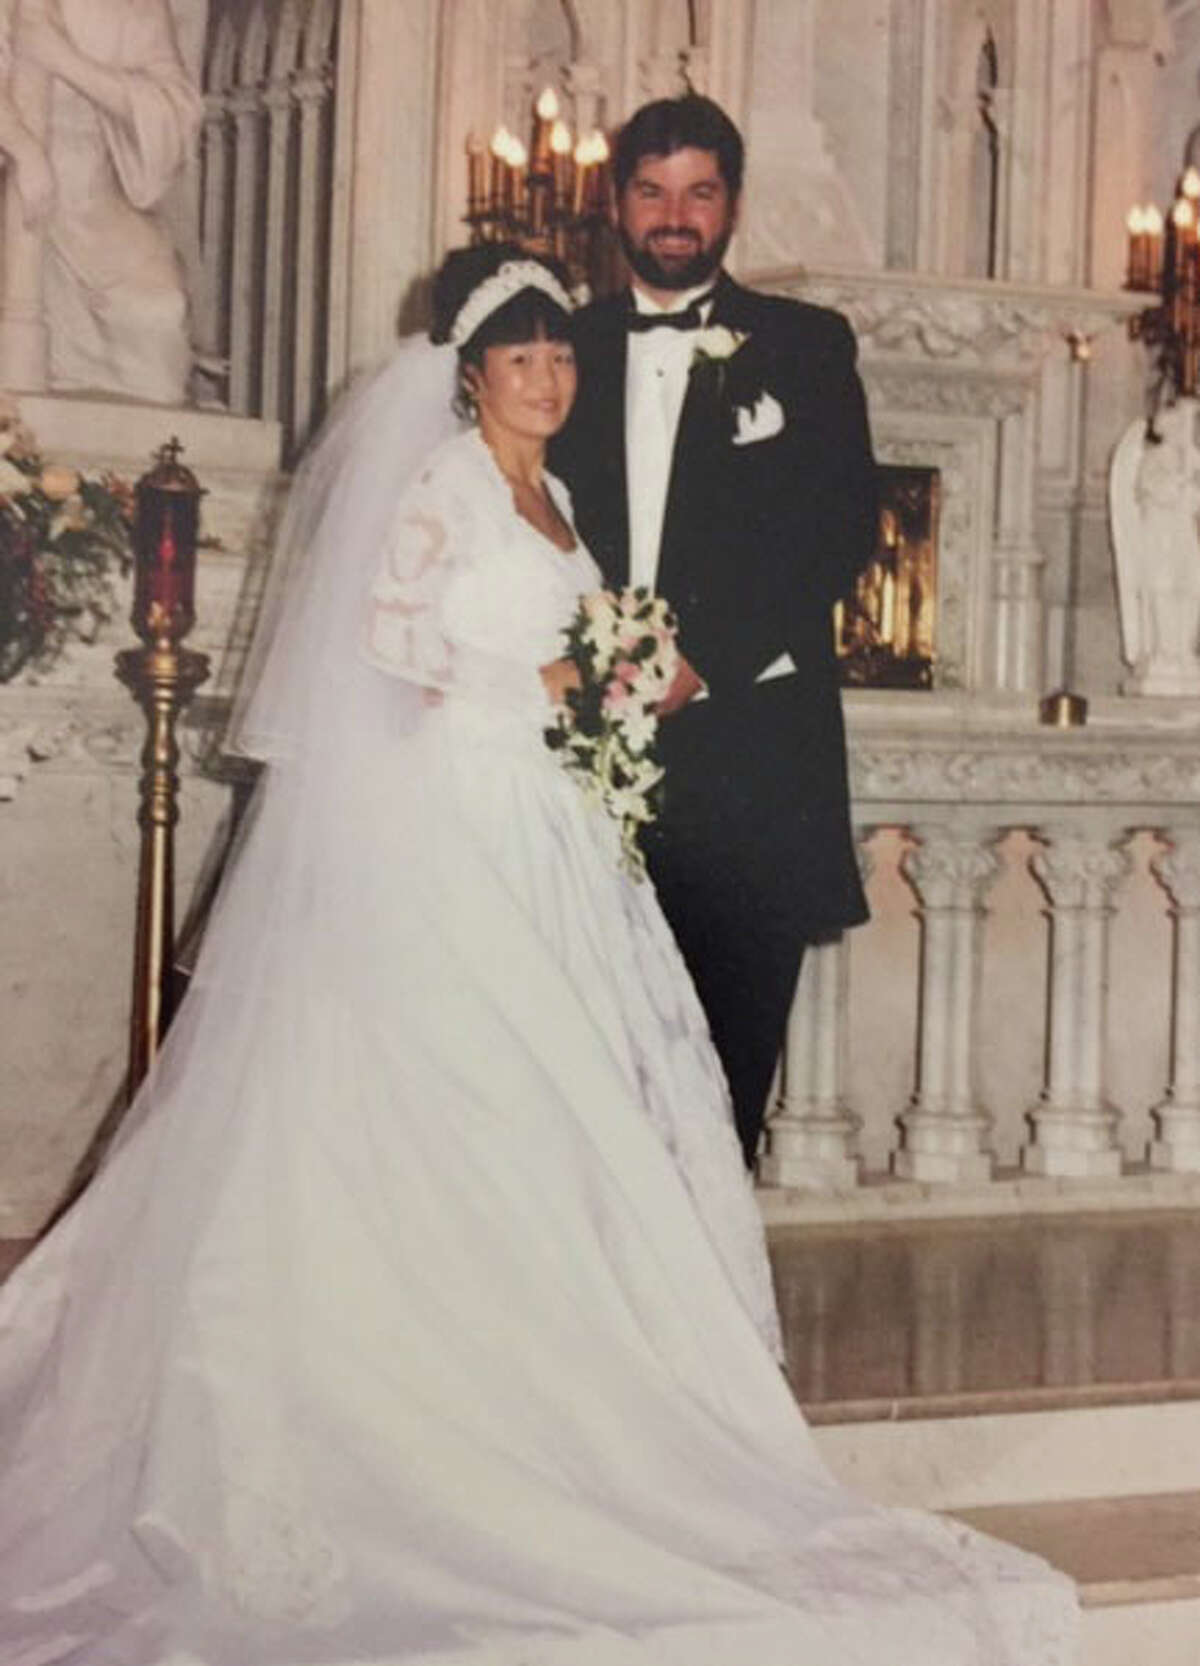 Stephen J. Erickson and his ex-wife, Margaret Sorokey, were married in 1999 in Schenectady. She said their marriage was dysfunctional and that Erickson had kept hidden the sexual abuse he suffered as a young boy at a Catholic school in Albany. (Provided photo)